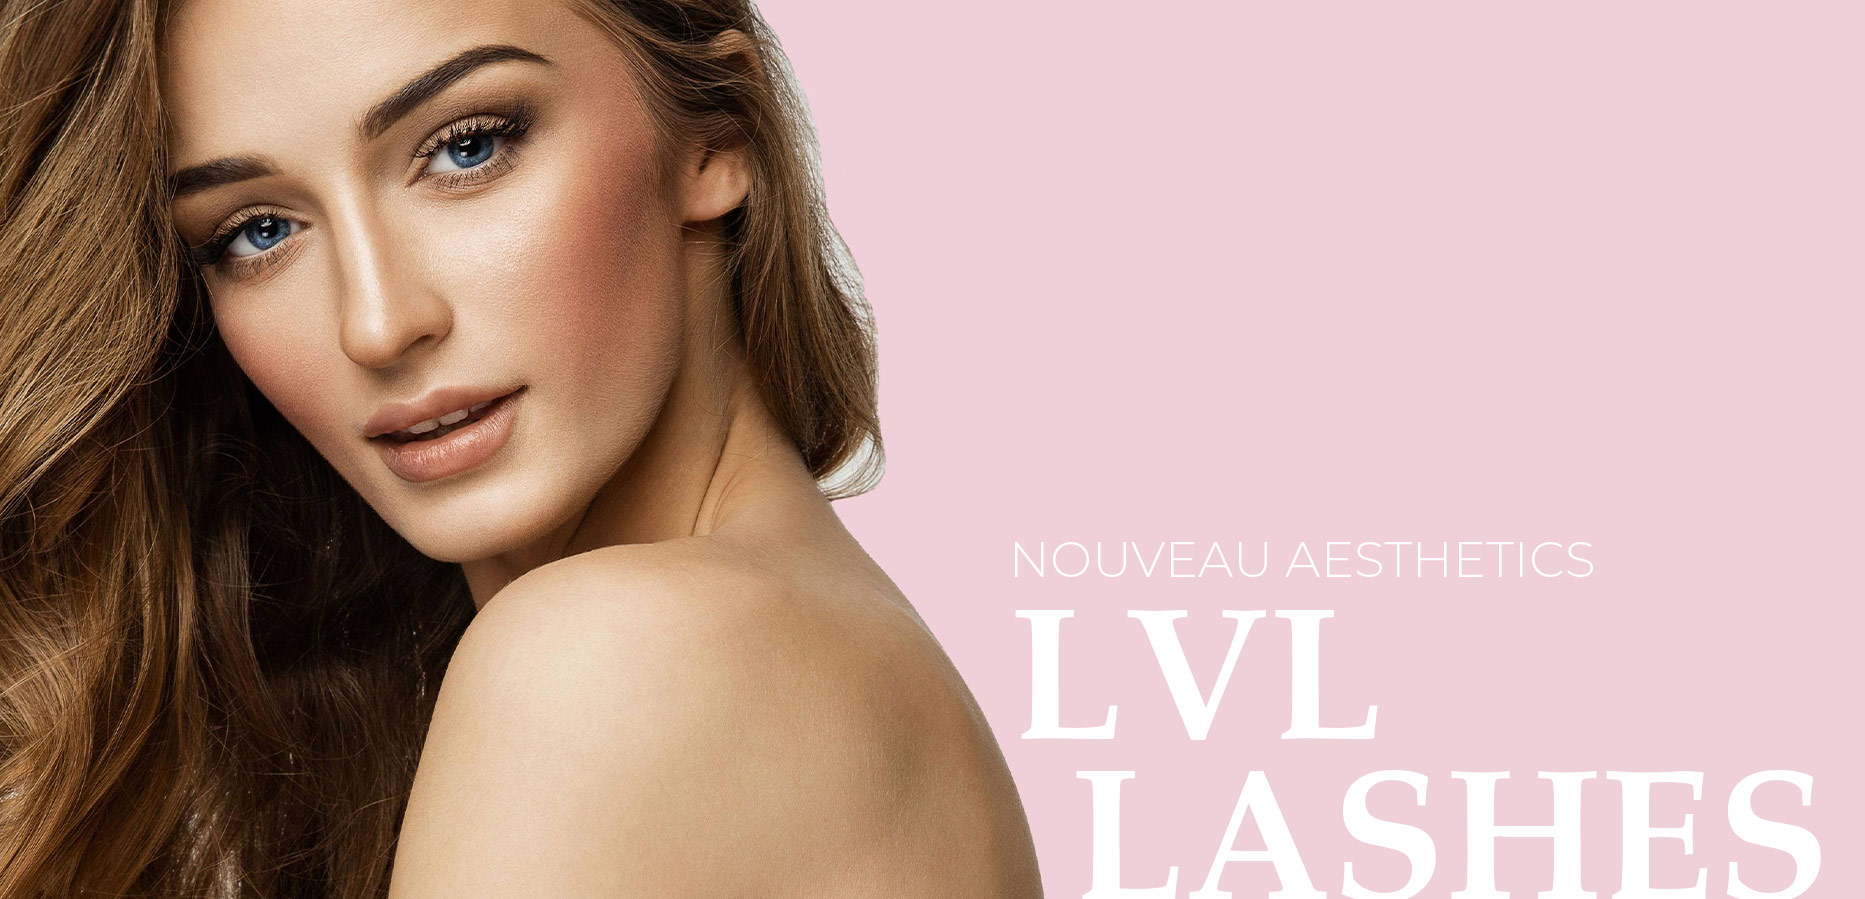 lvl lashes model